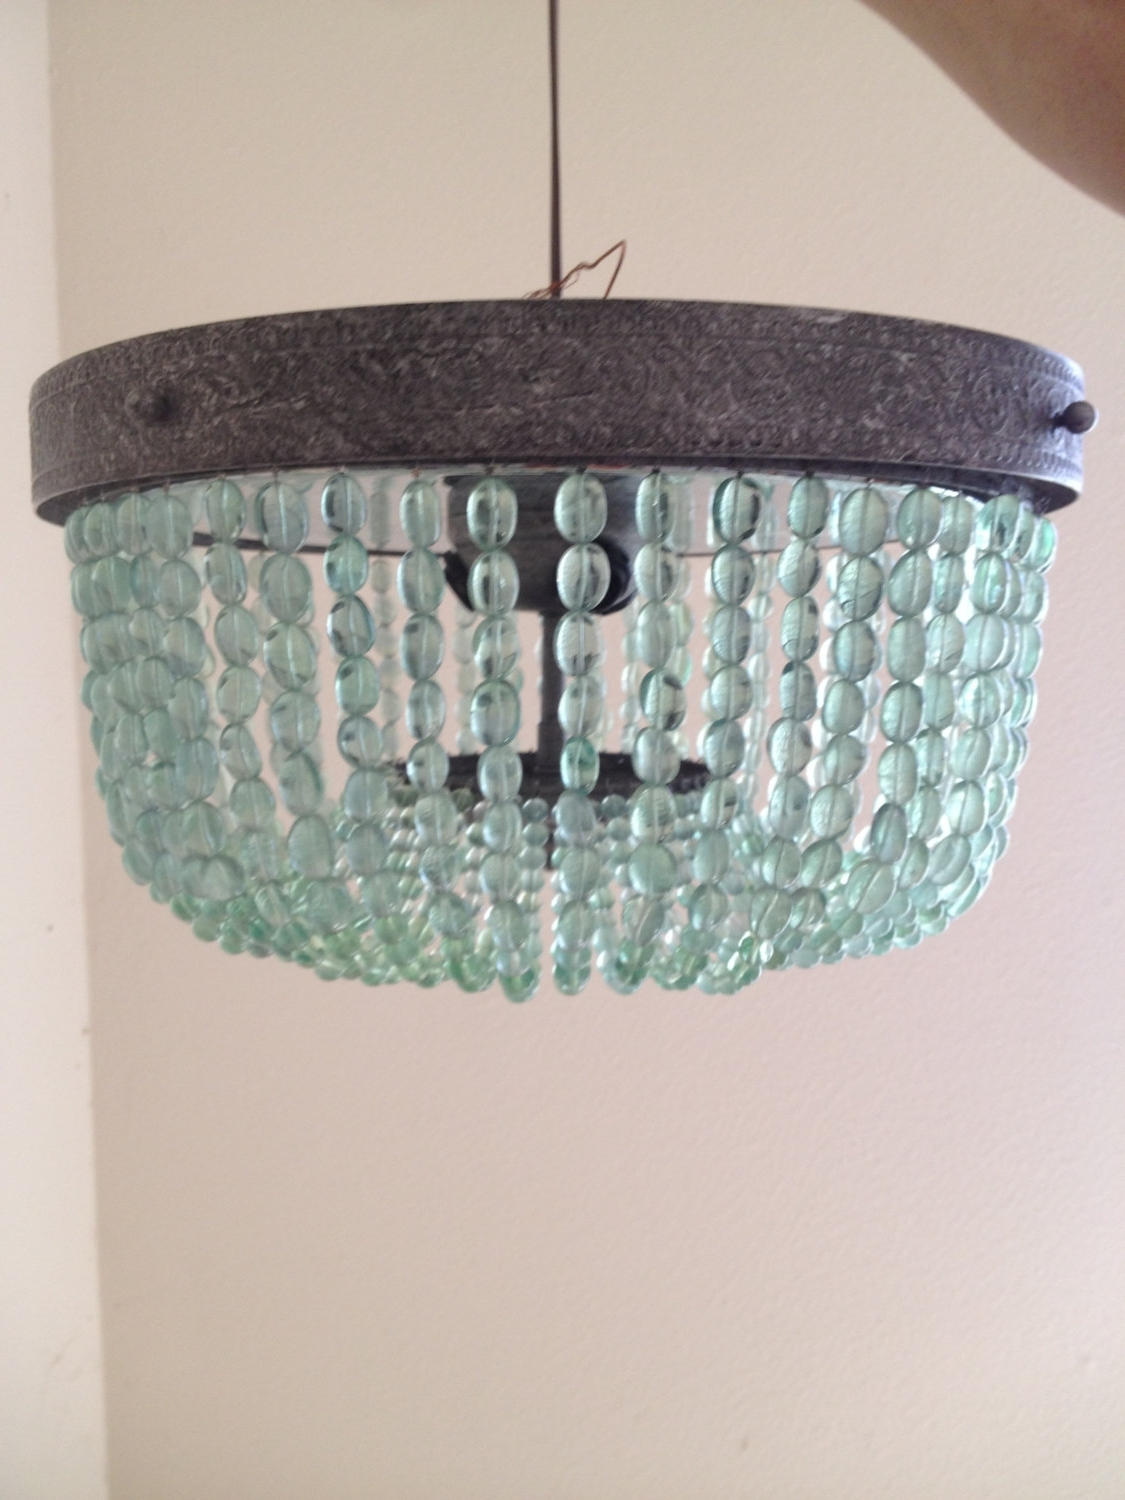 Turquoise Beaded Chandelier Light Fixtures With Popular Aqua (Light Turquoise, Green) Vintage Style Beaded Chandelier (View 3 of 15)